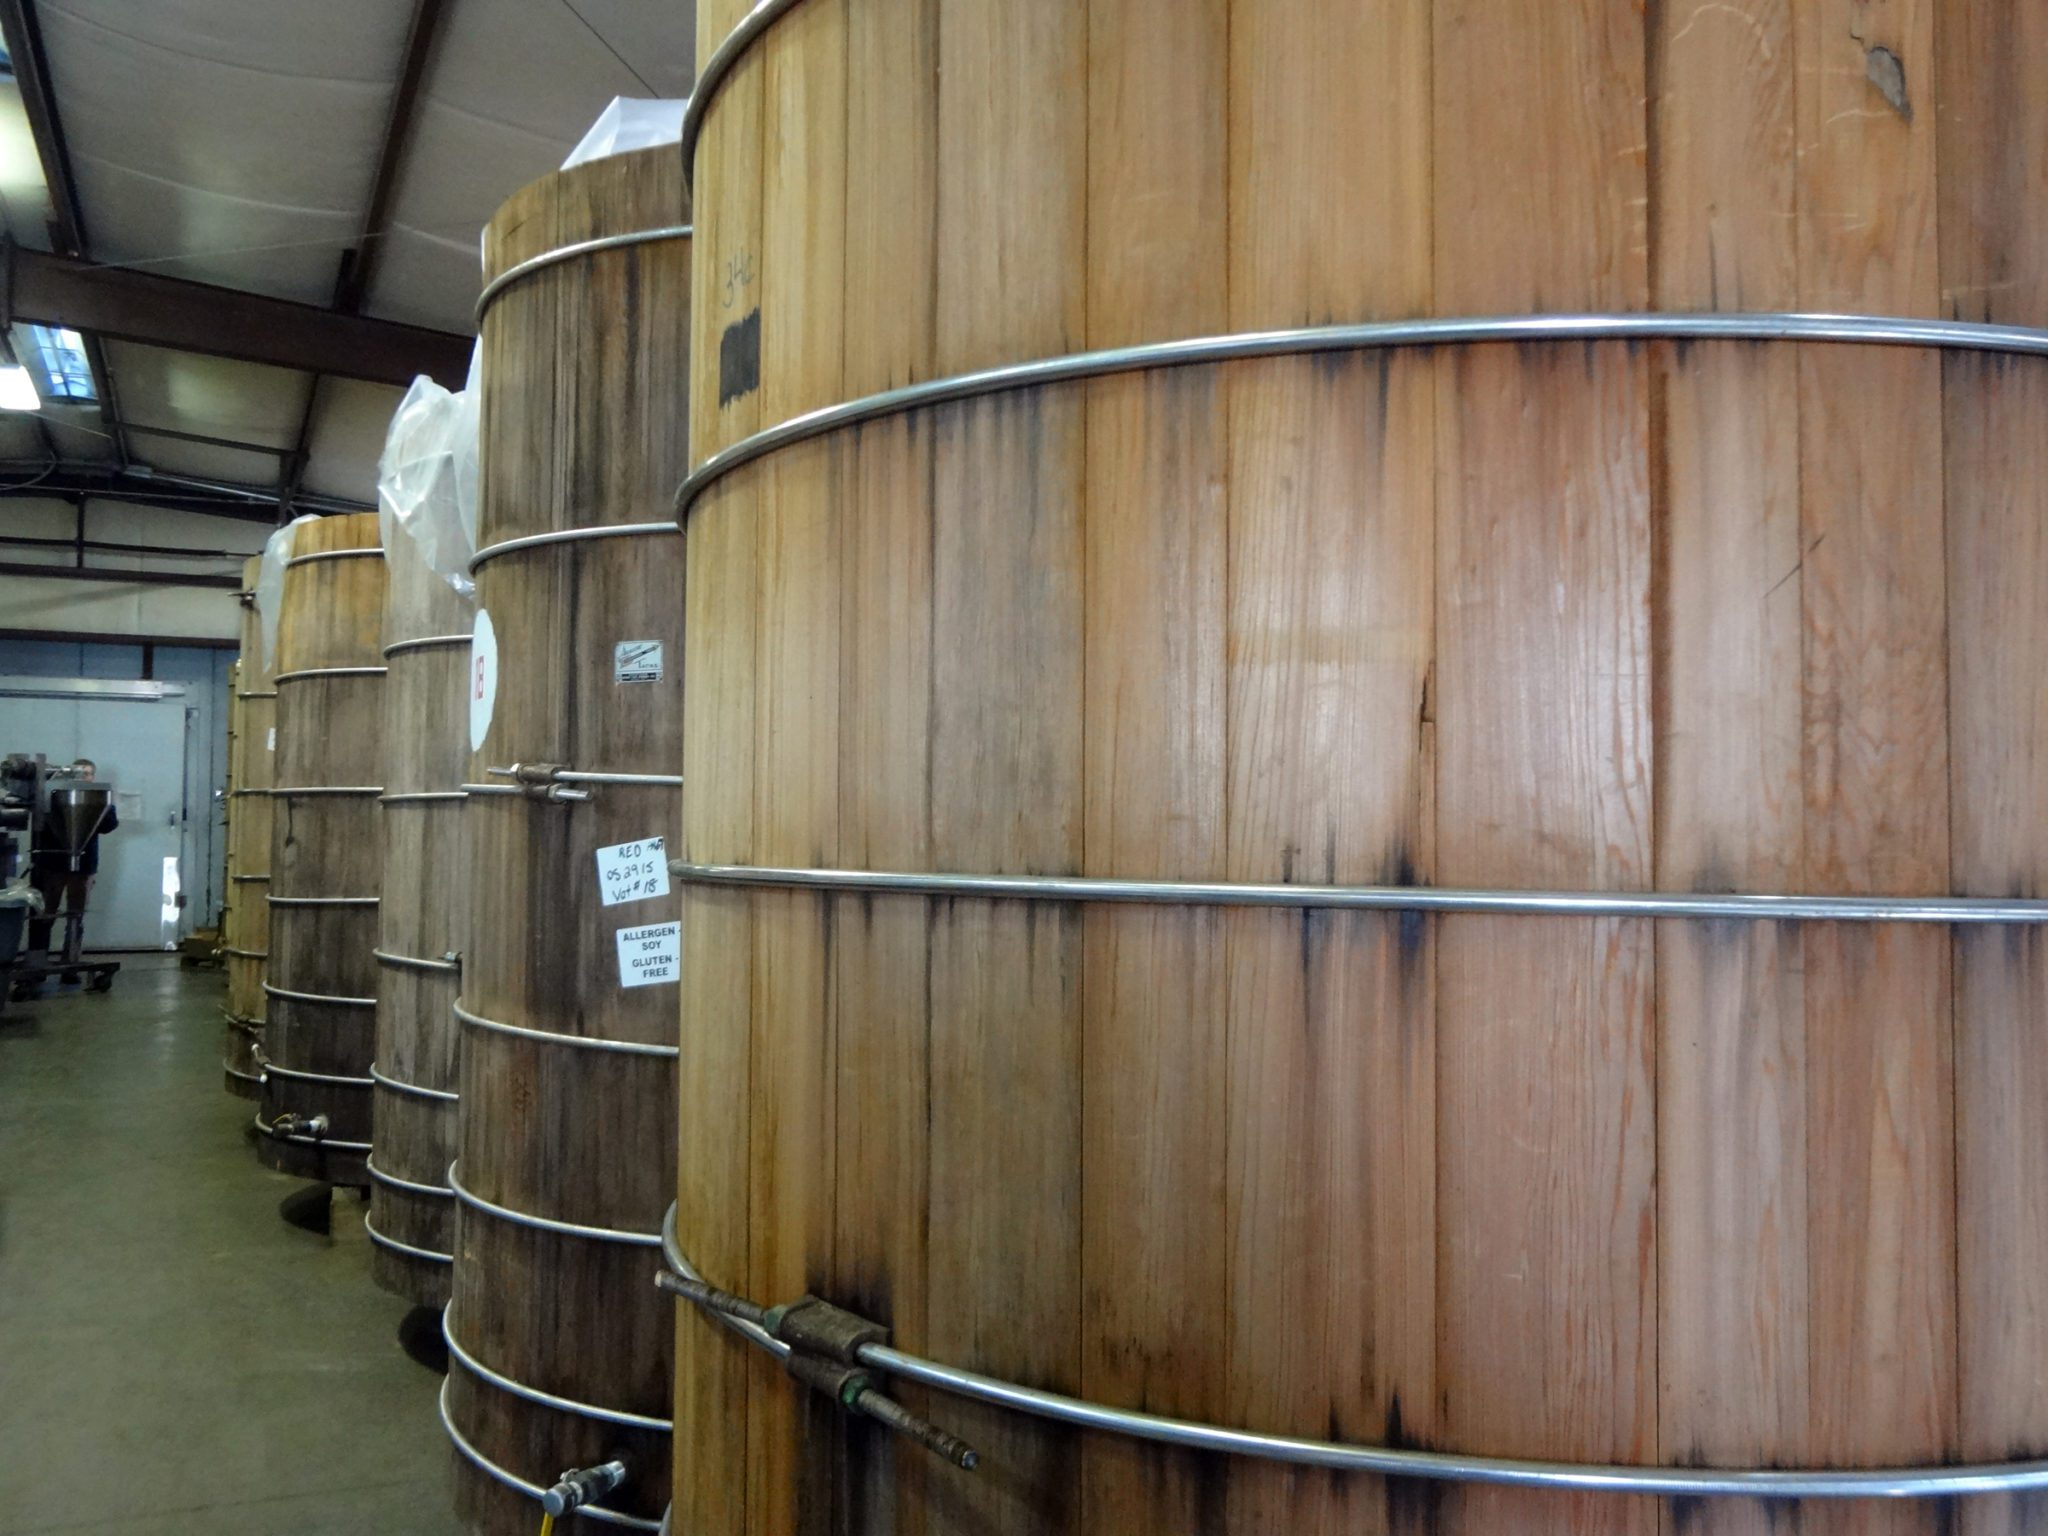 Miso Master tour, as seen on pixiespocket.com: The hand-crafted wooden vats, each with 4 tons of aging miso.